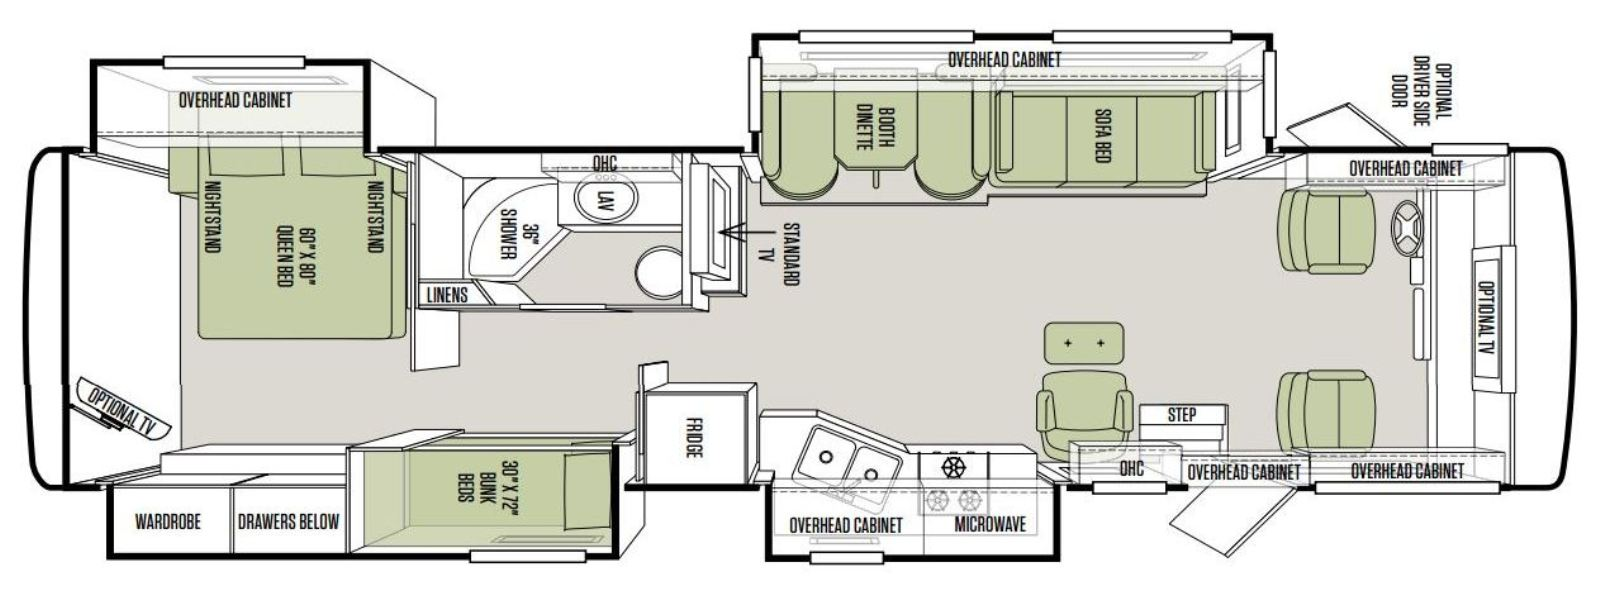 2002 Damon Ultrasport Floor Plan My Blog About May2018 Calendar Intruder Wiring Diagram Tv By For 1998 Rv Problems